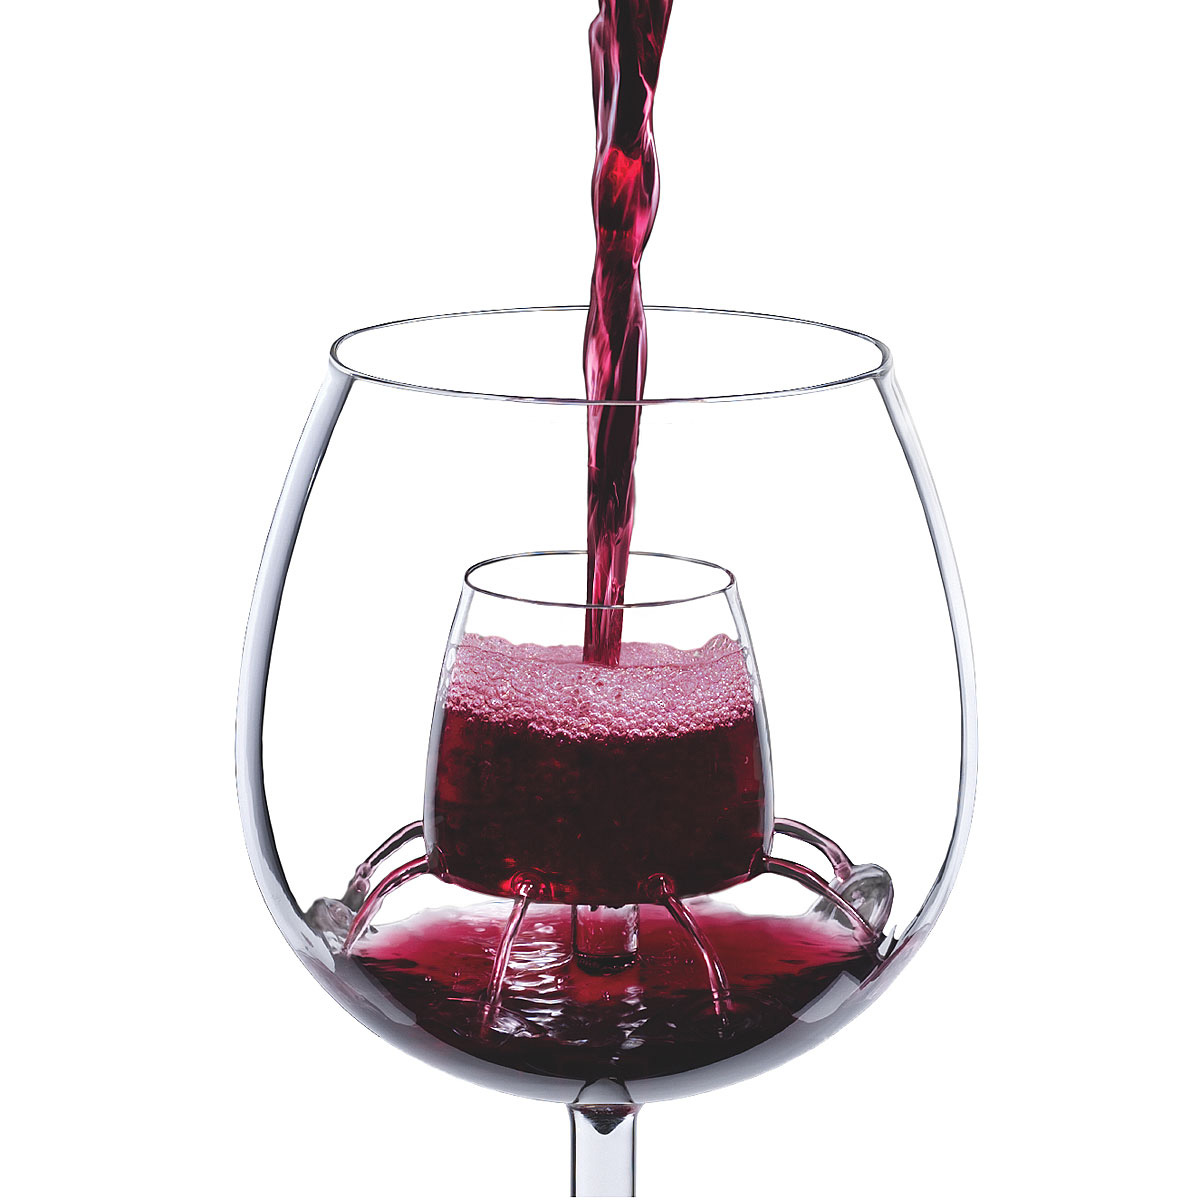 Interesting_Wine_Glass_3